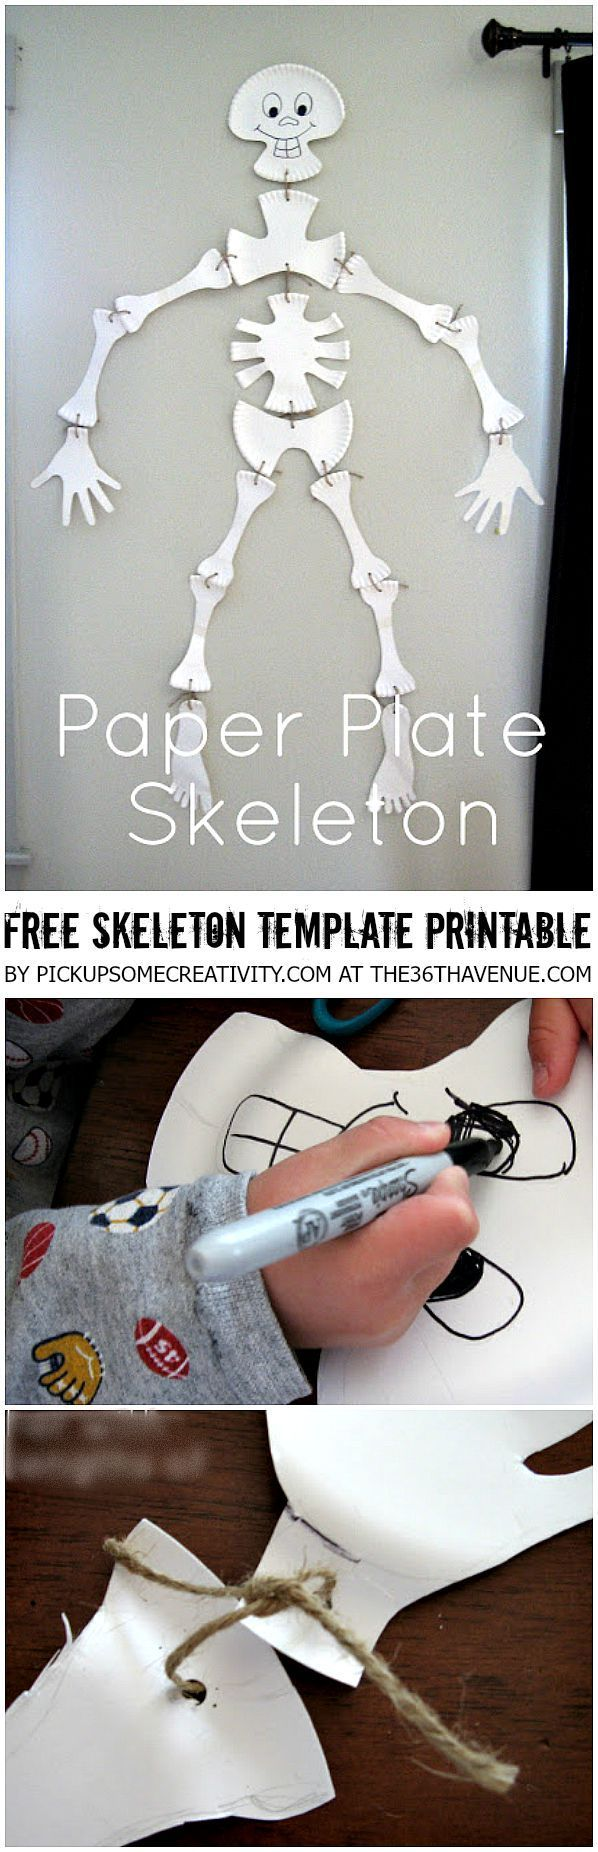 Halloween Crafts - Paper Plate Skeleton and Free Skeleton Template Printable at the36thavenue.com